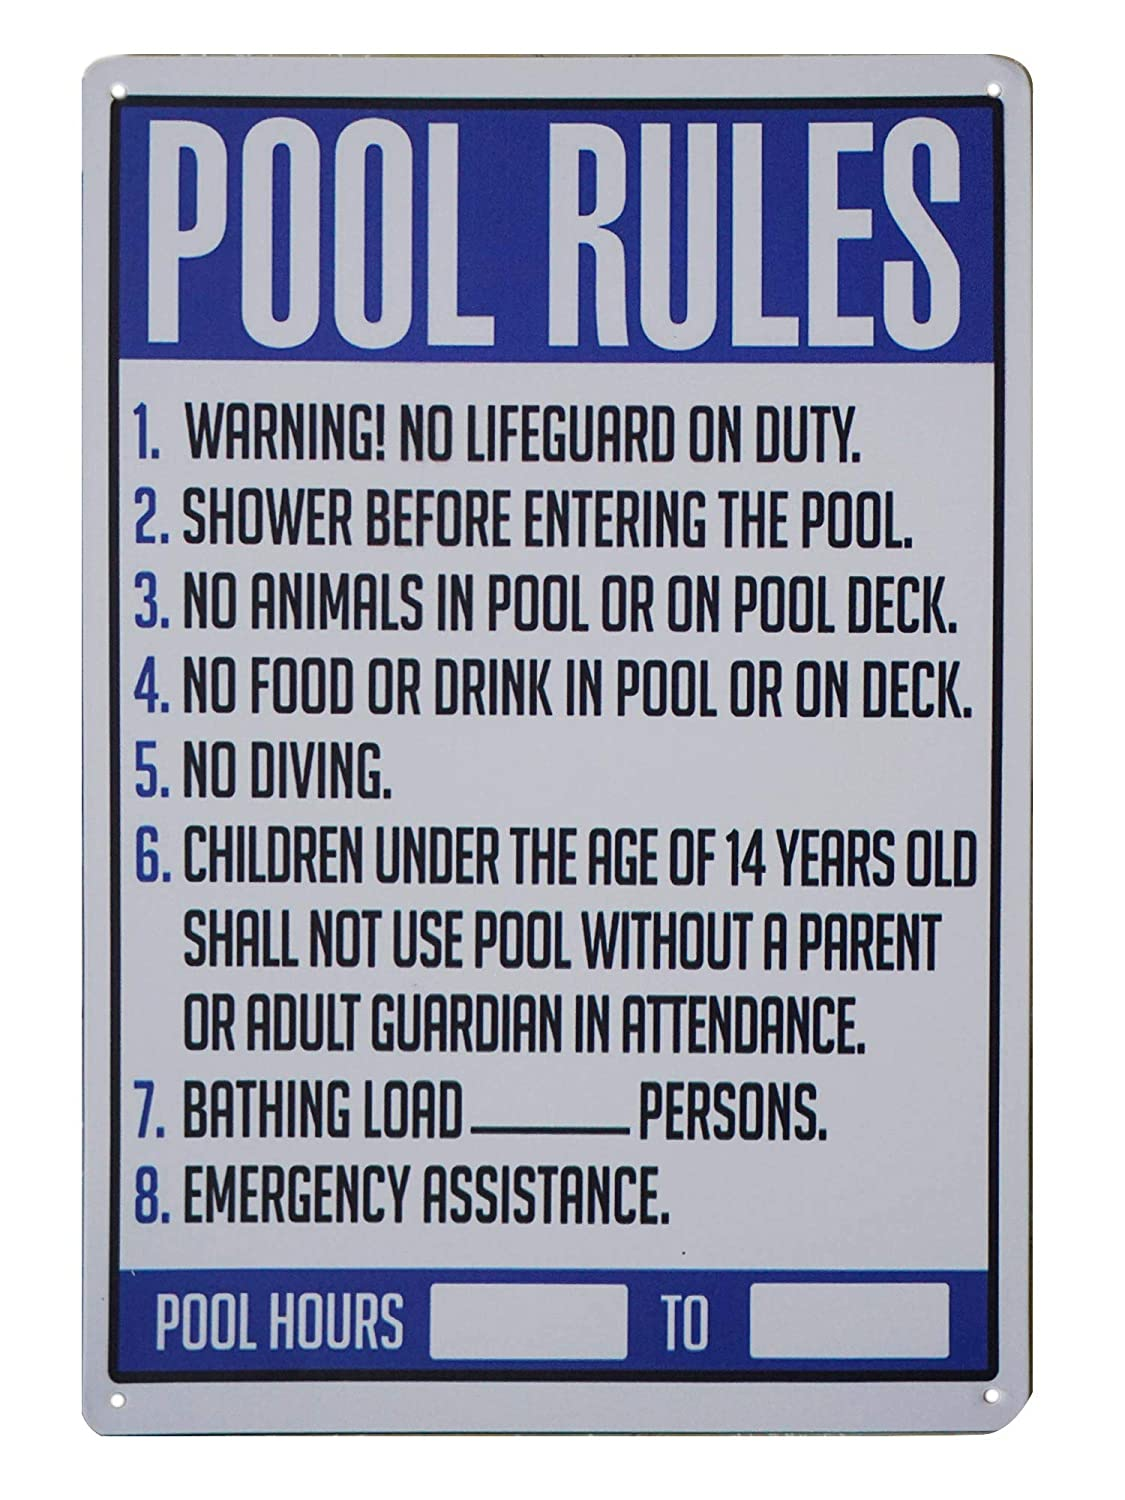 9cd5c0fff0e Amazon.com  Monifith Pool Rules Sign for Commercial Swimming Pools Yard  Signs Outdoor Lawn Decorations 8X12 Inch  Industrial   Scientific